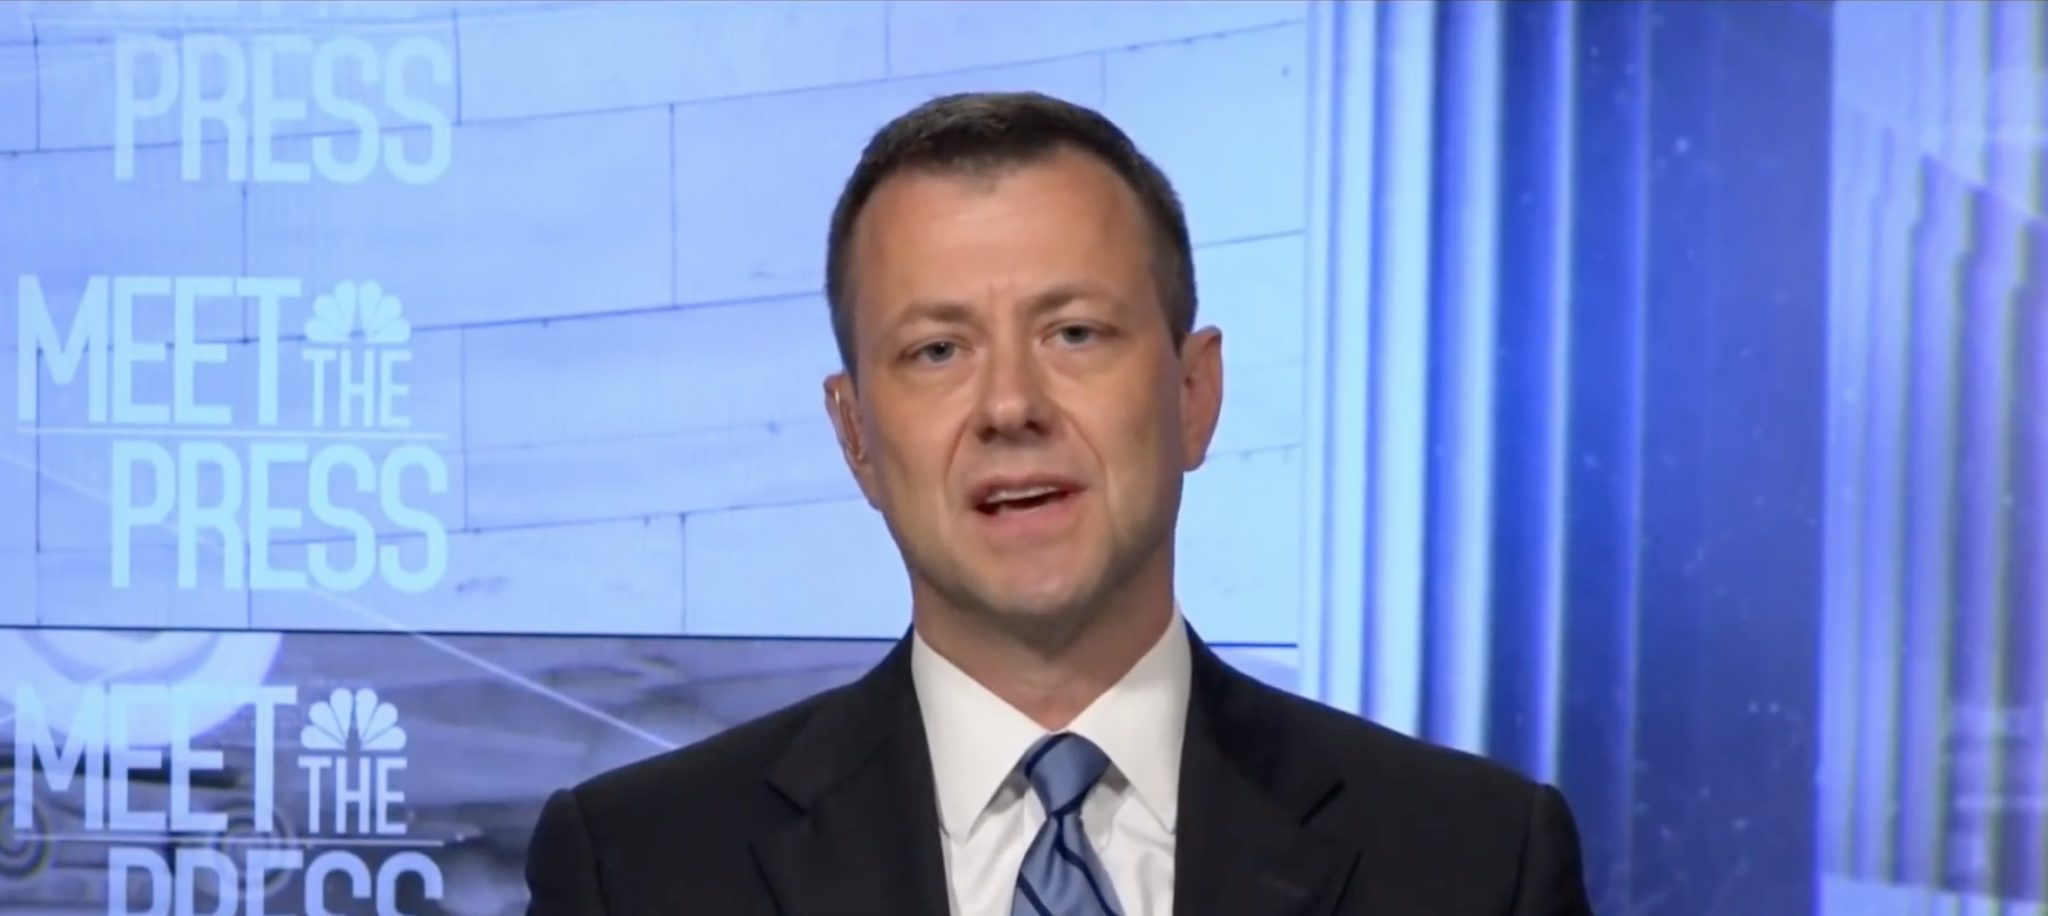 Georgetown University Hires Disgraced FBI Agent Peter Strzok to Teach Undergraduate Students | The American Spectator | USA News and PoliticsThe American Spectator | USA News and Politics